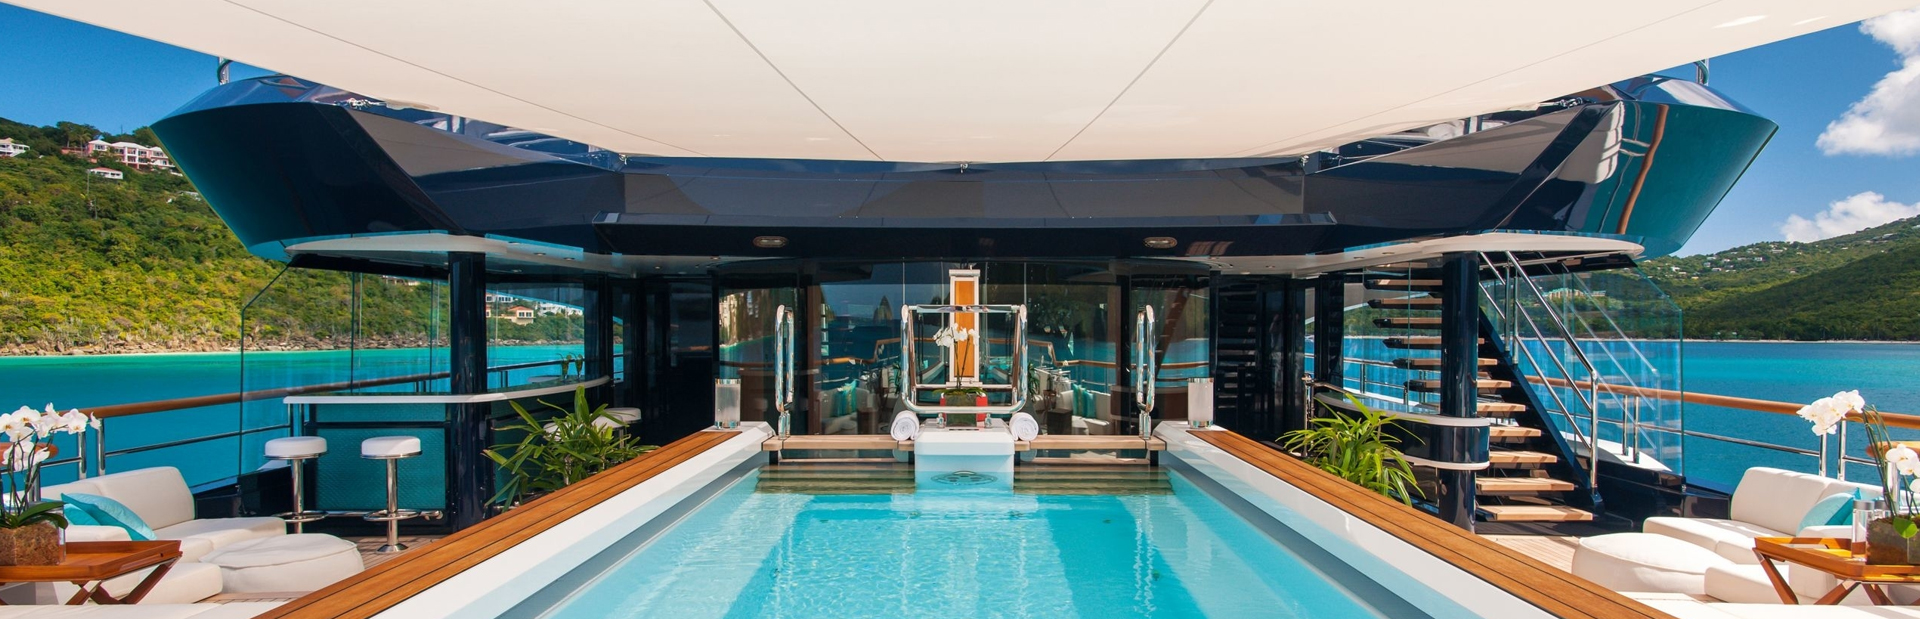 Solandge motor yacht on deck swimming pool